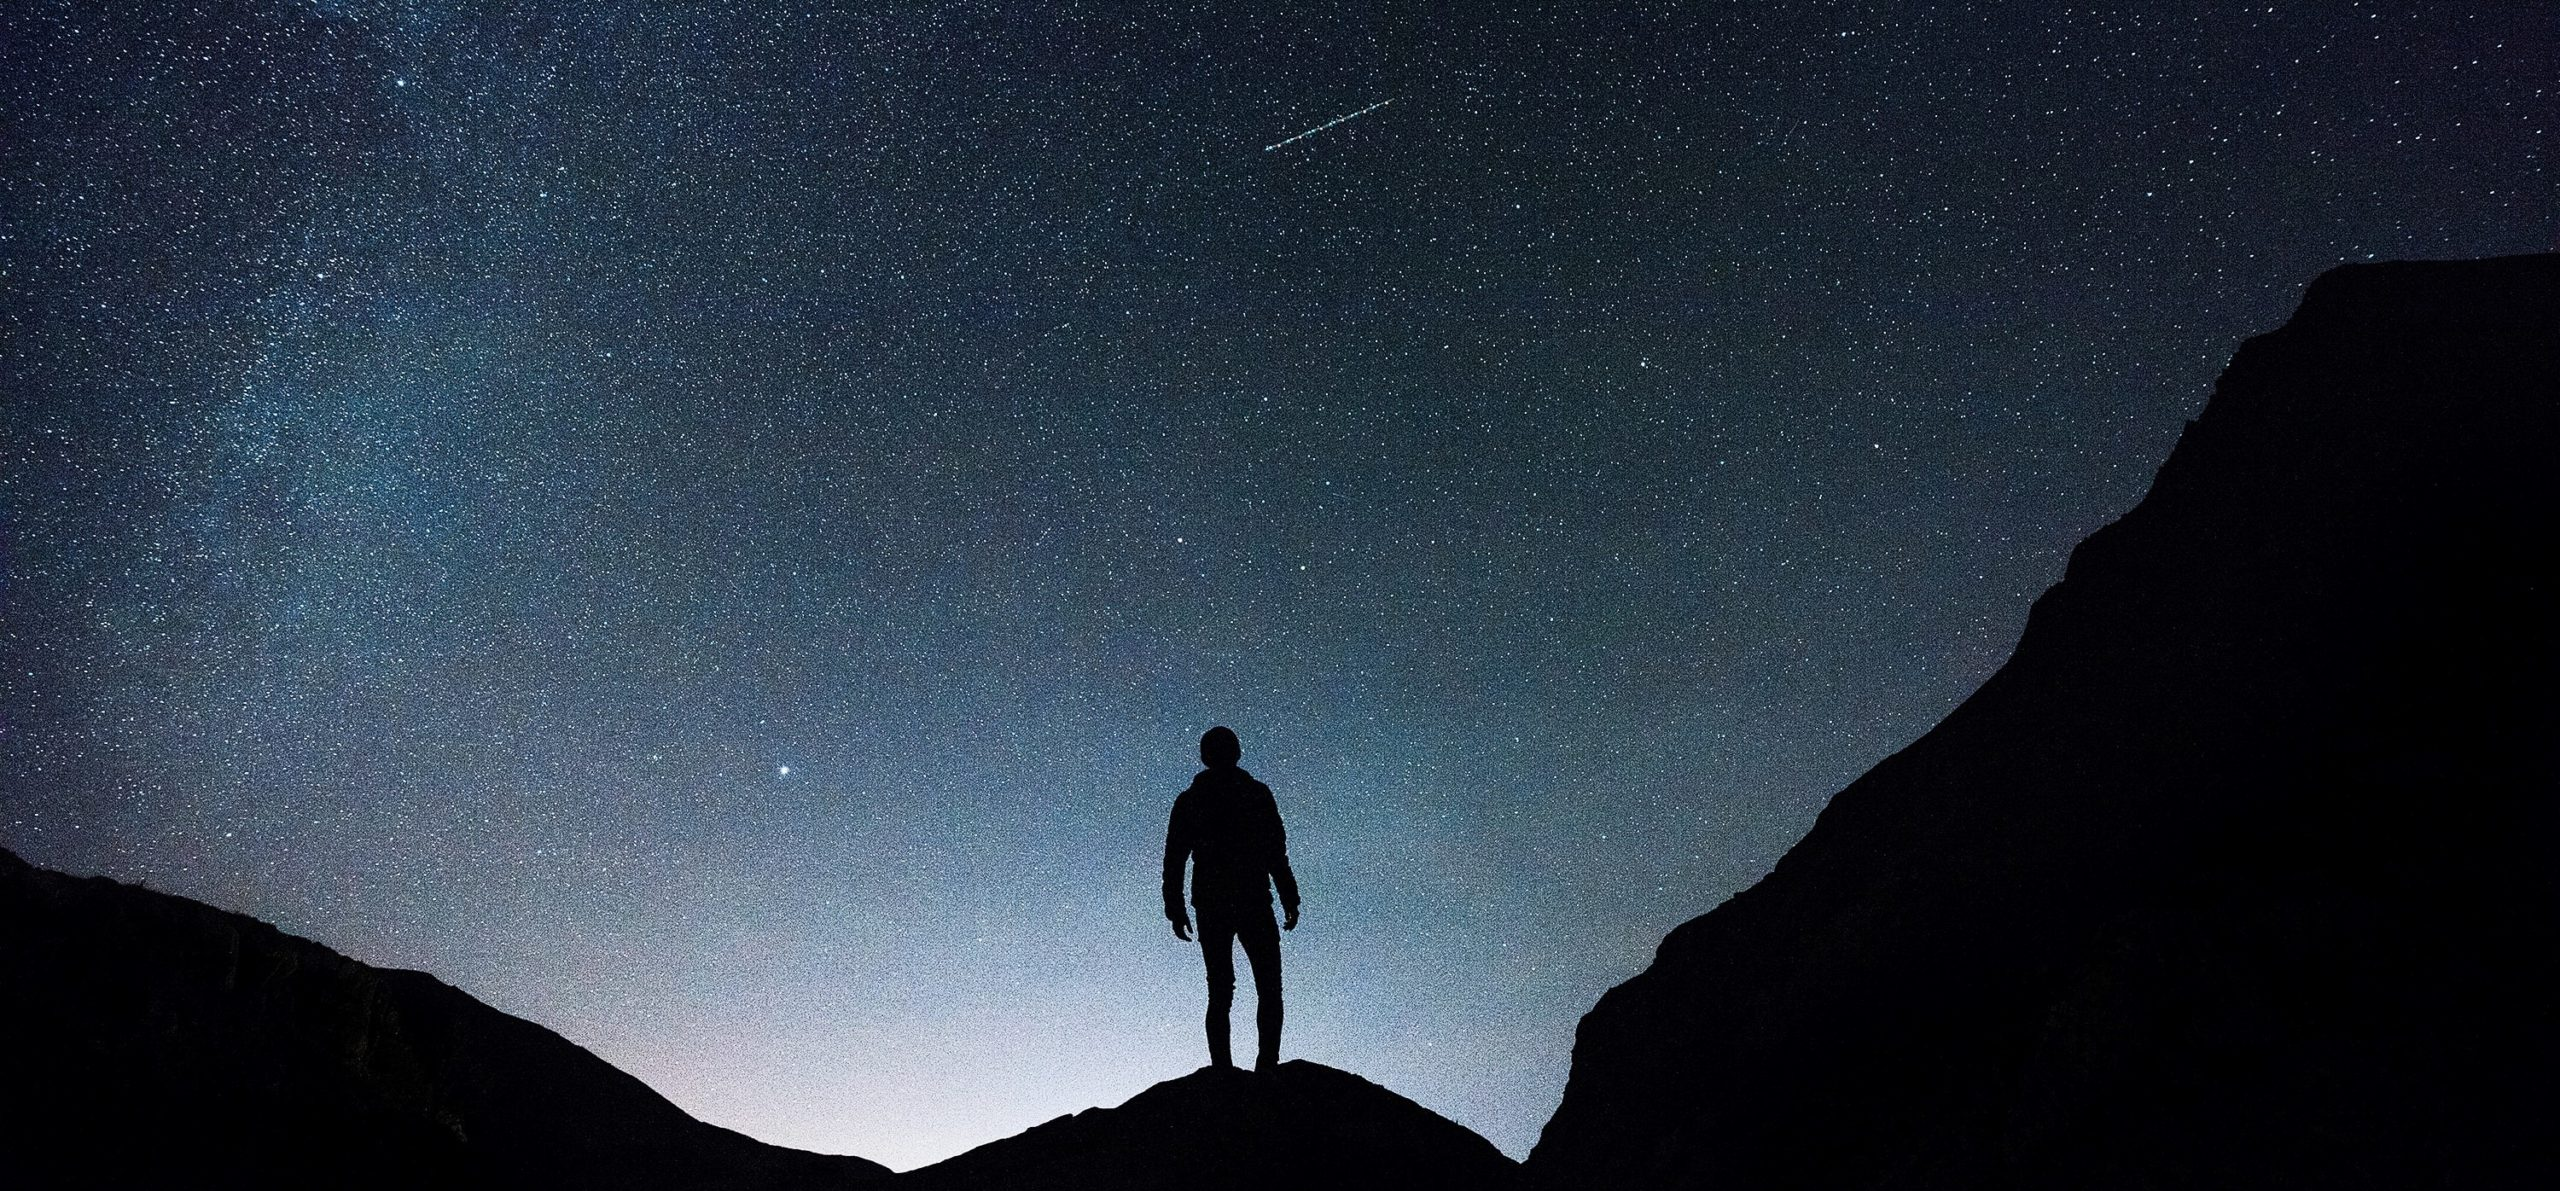 person stood in front of dark sky to represent The struggle of being an Agile perfectionist.